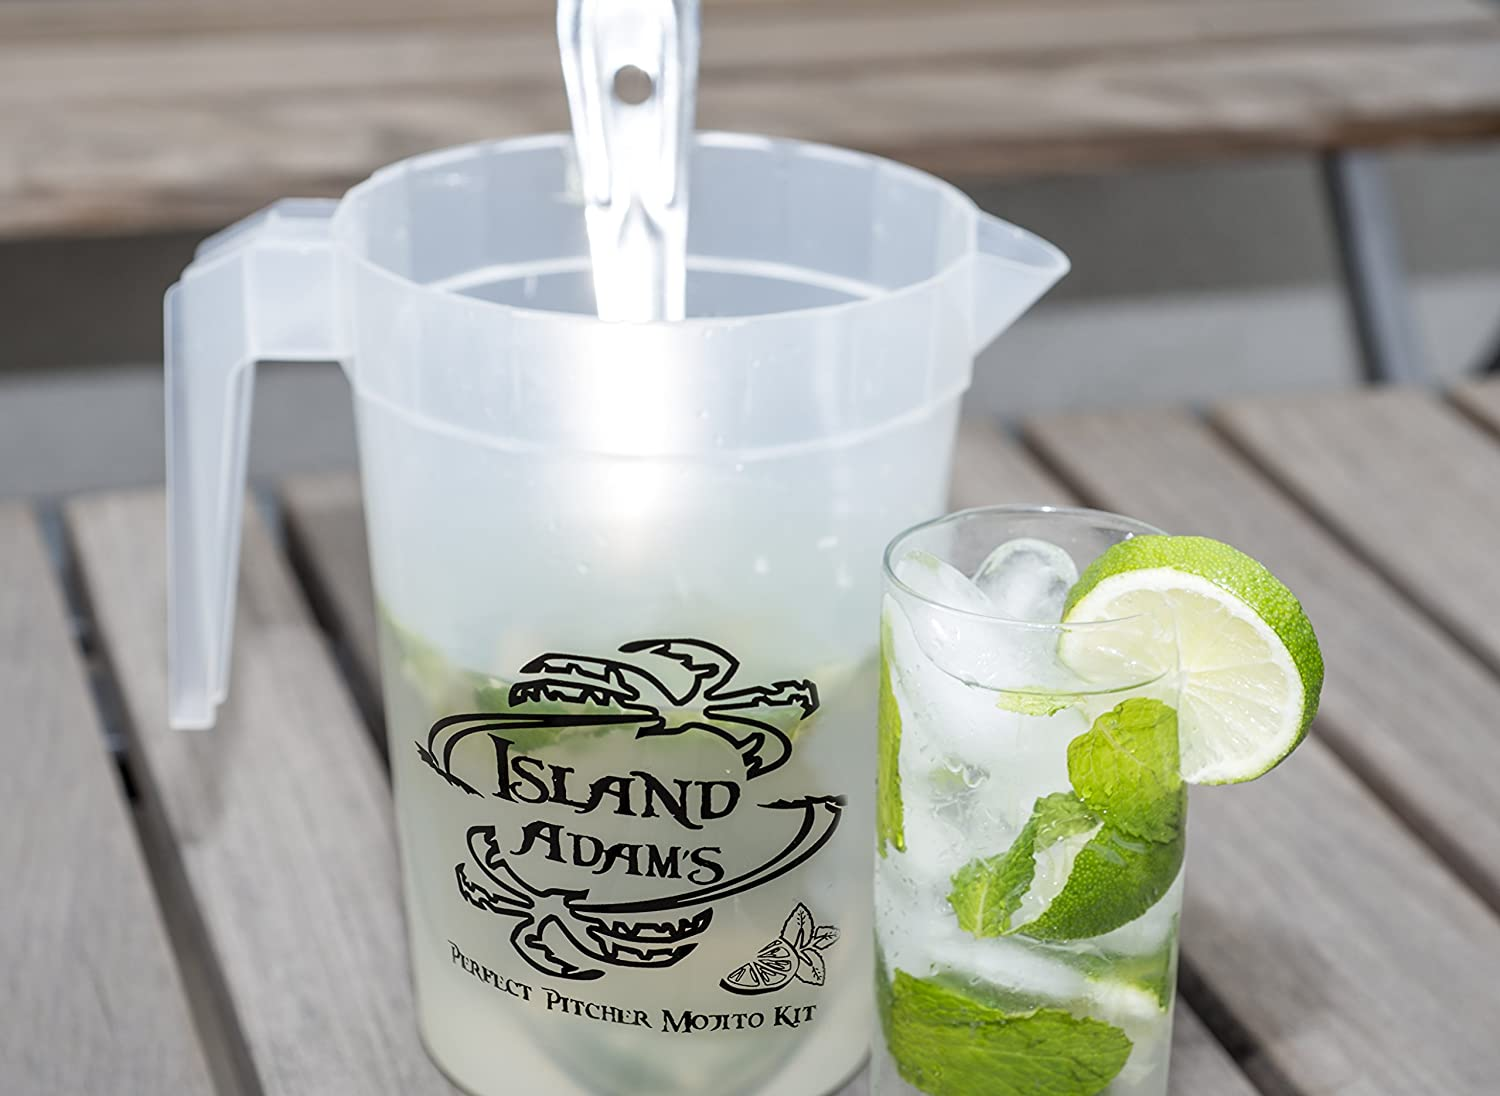 muddler measuring cup This is the bar set for fresh homemade mojitos. spoon recipe Perfect Pitcher Mojito Kit Mojito pitcher tools and recipe for a perfect pitcher of mojitos every time guide